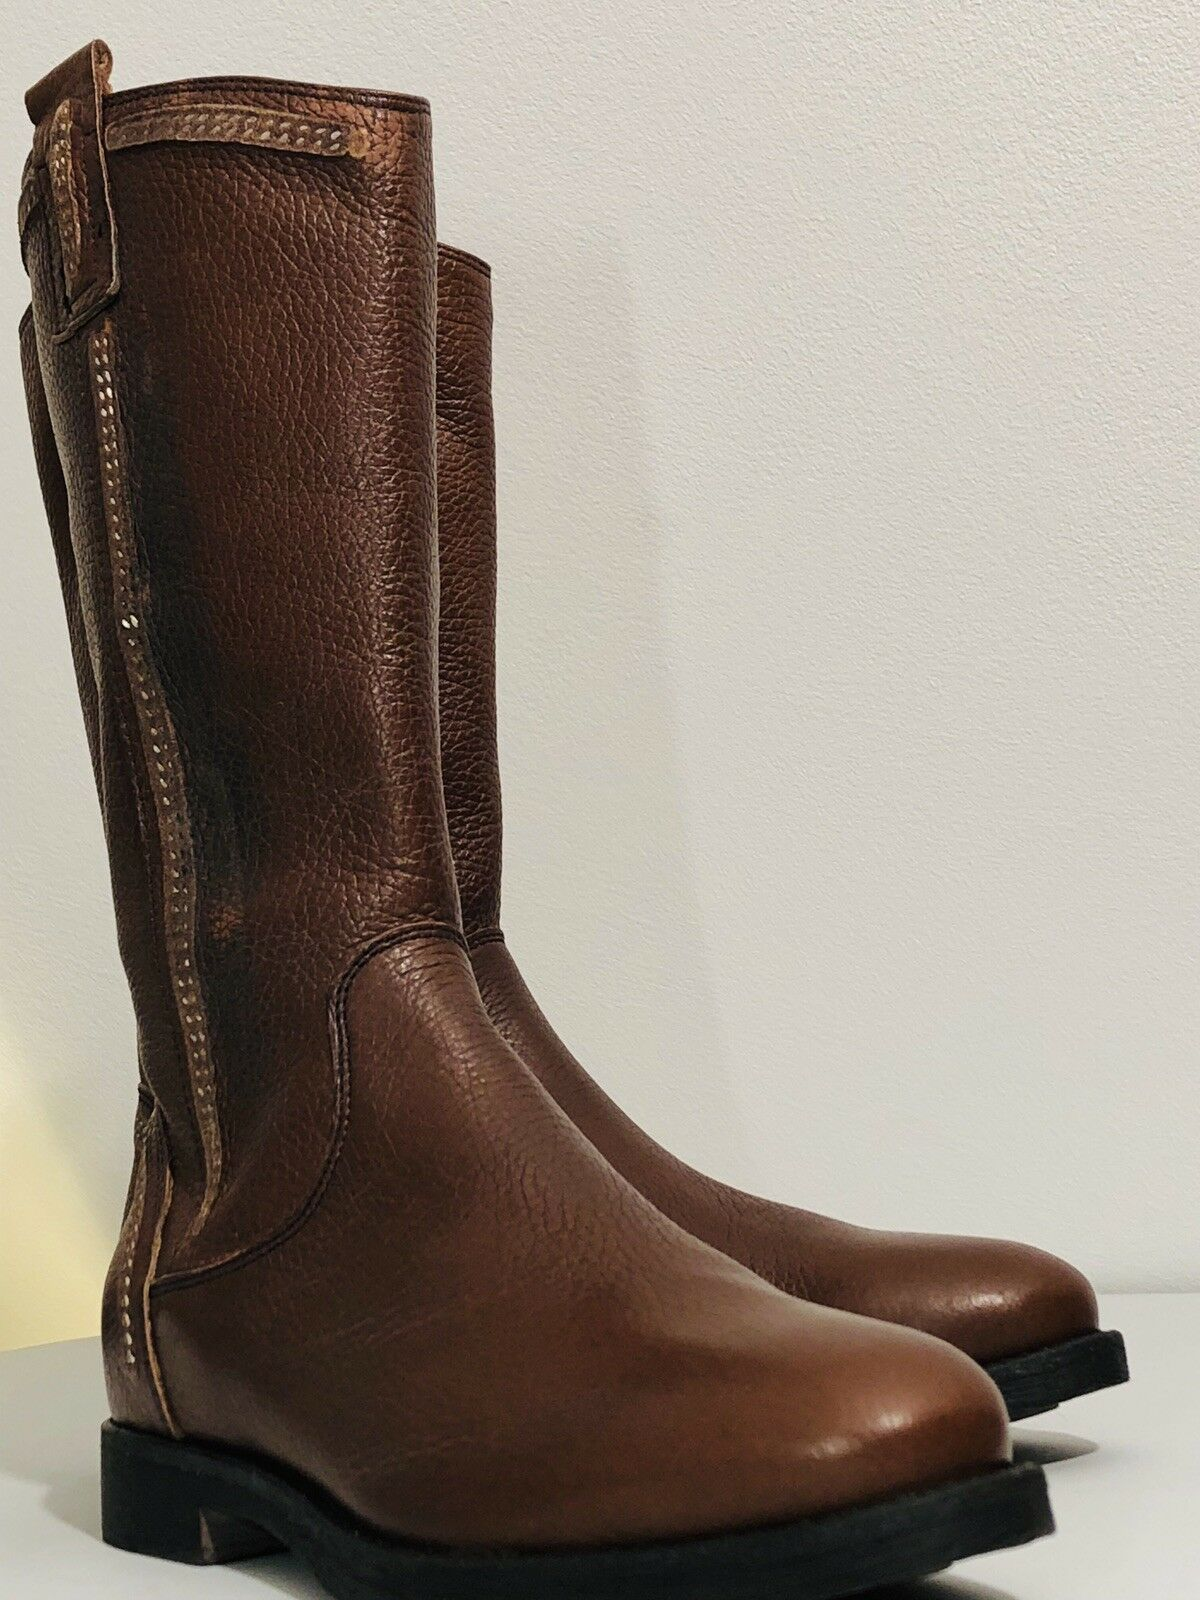 Nana' Ladies Calf Cognac Leather Riding Boots Size US 5. Rrp